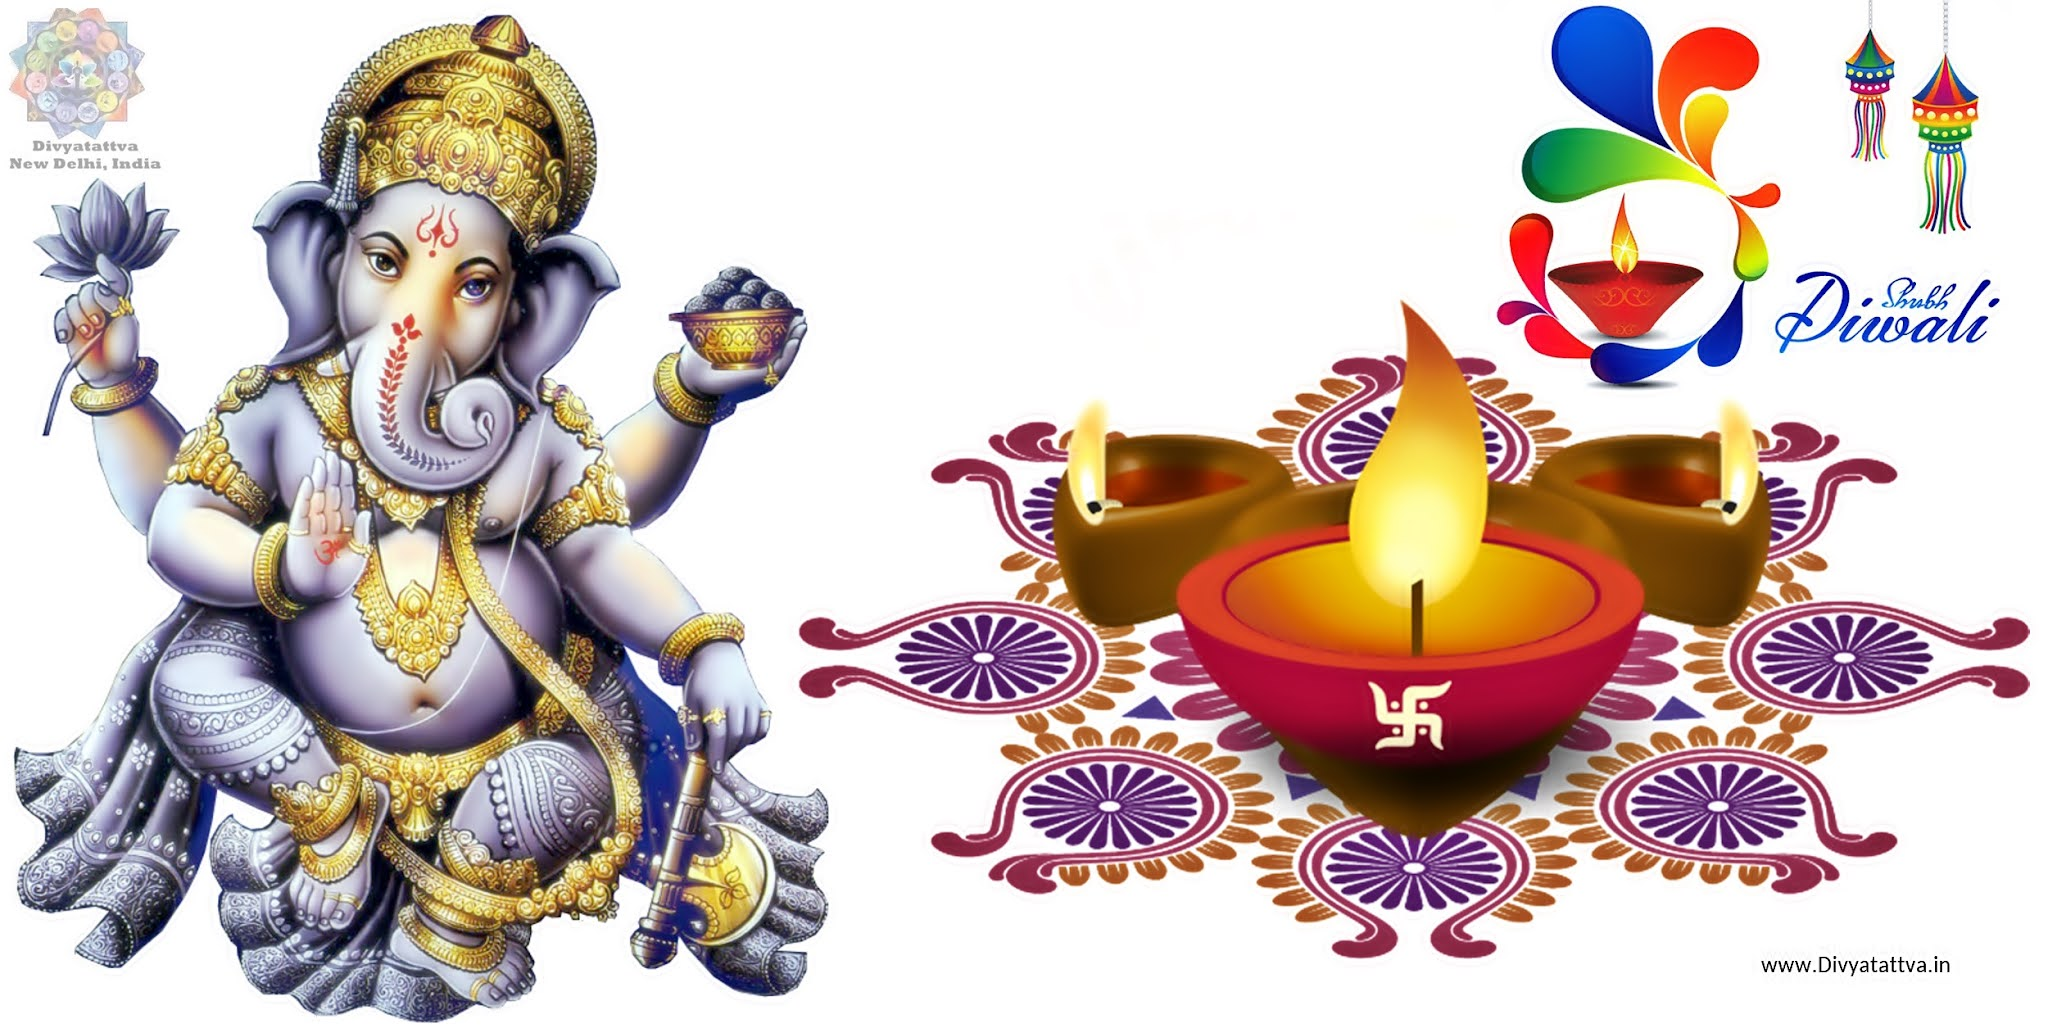 Happy Diwali Festival Pics, Diwali Images, 4k UHD Wallpaper Greetings Wishes Background Photos